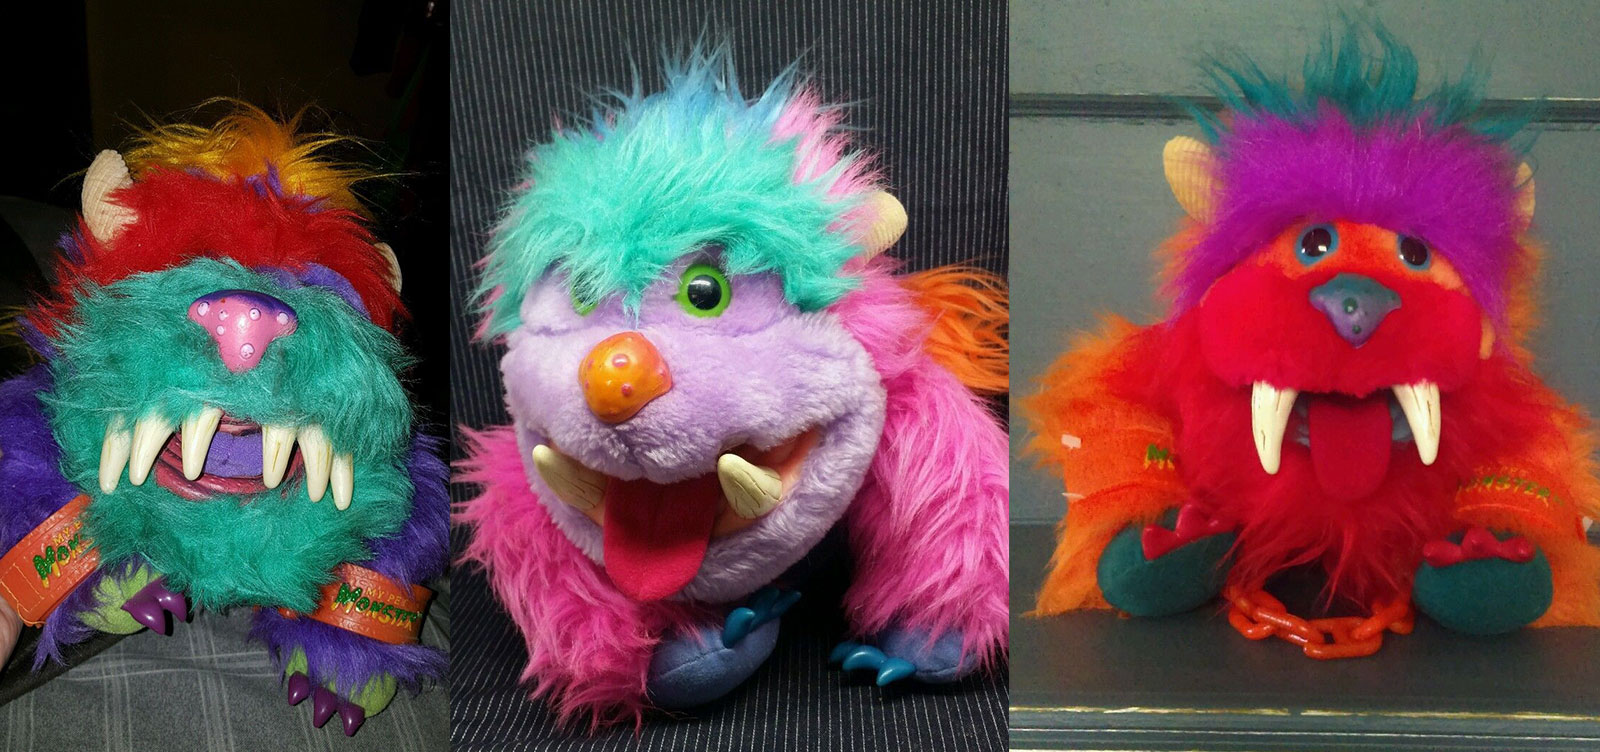 My Pet Monster - Puppets